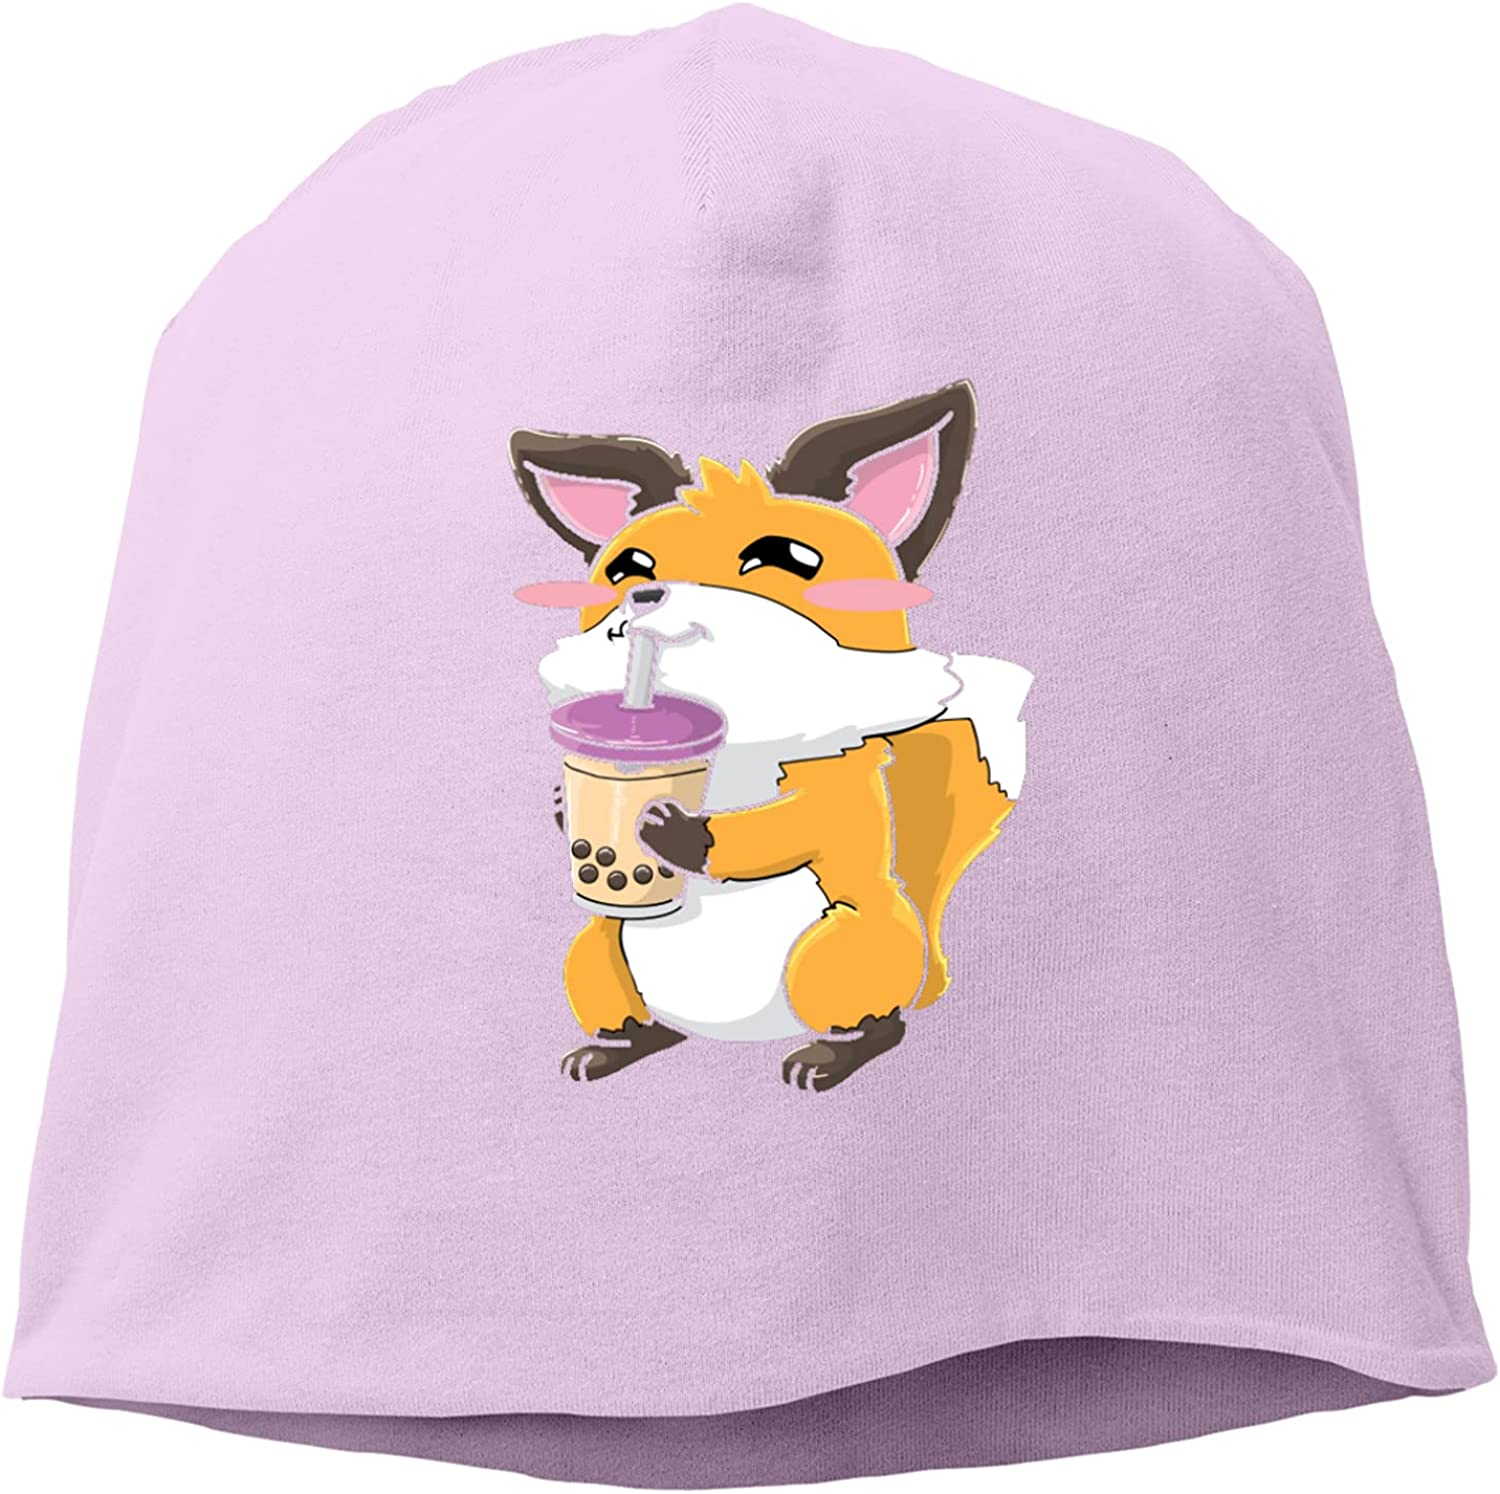 Fox Popular shop is the lowest price Free shipping anywhere in the nation challenge in Tea Hat,Unisex Knitted Hedging Cap Adjustable Beanie